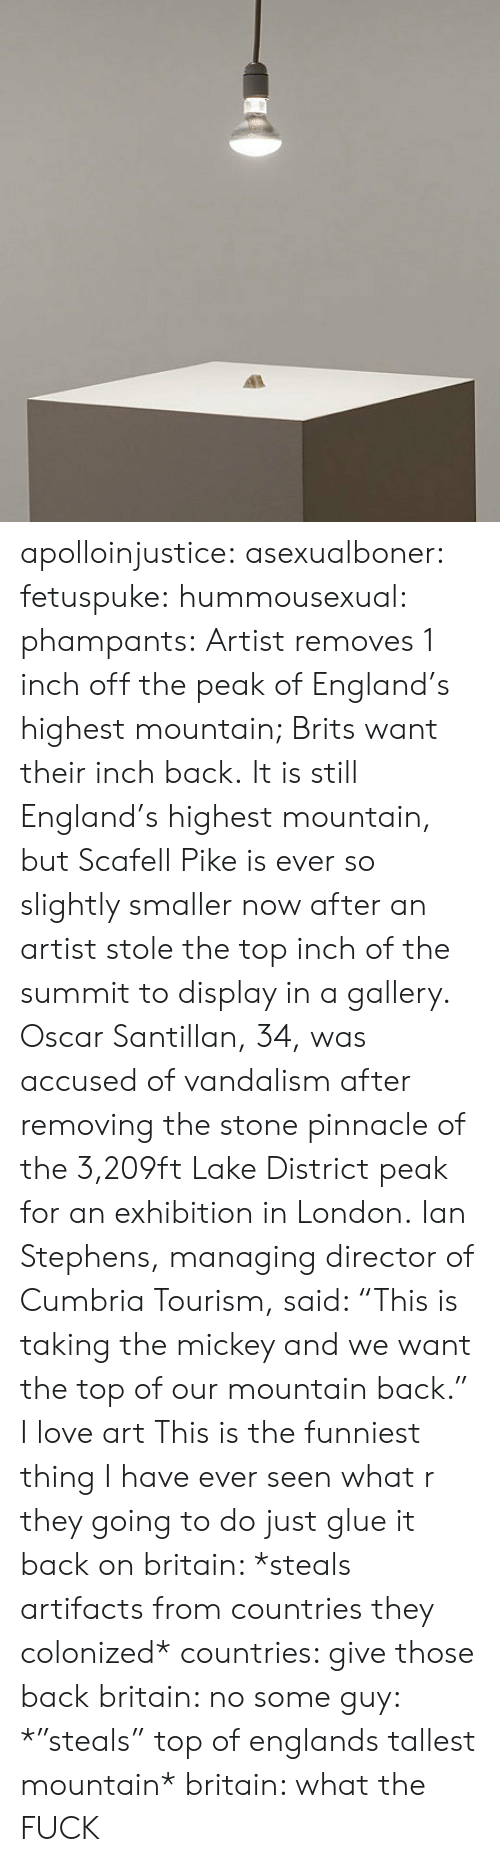 "mickey: apolloinjustice:  asexualboner:  fetuspuke:   hummousexual:   phampants:   Artist removes 1 inch off the peak of England's highest mountain; Brits want their inch back. It is still England's highest mountain, but Scafell Pike is ever so slightly smaller now after an artist stole the top inch of the summit to display in a gallery. Oscar Santillan, 34, was accused of vandalism after removing the stone pinnacle of the 3,209ft Lake District peak for an exhibition in London. Ian Stephens, managing director of Cumbria Tourism, said: ""This is taking the mickey and we want the top of our mountain back.""   I love art   This is the funniest thing I have ever seen   what r they going to do just glue it back on   britain: *steals artifacts from countries they colonized* countries: give those back britain: no some guy: *""steals"" top of englands tallest mountain* britain: what the FUCK"